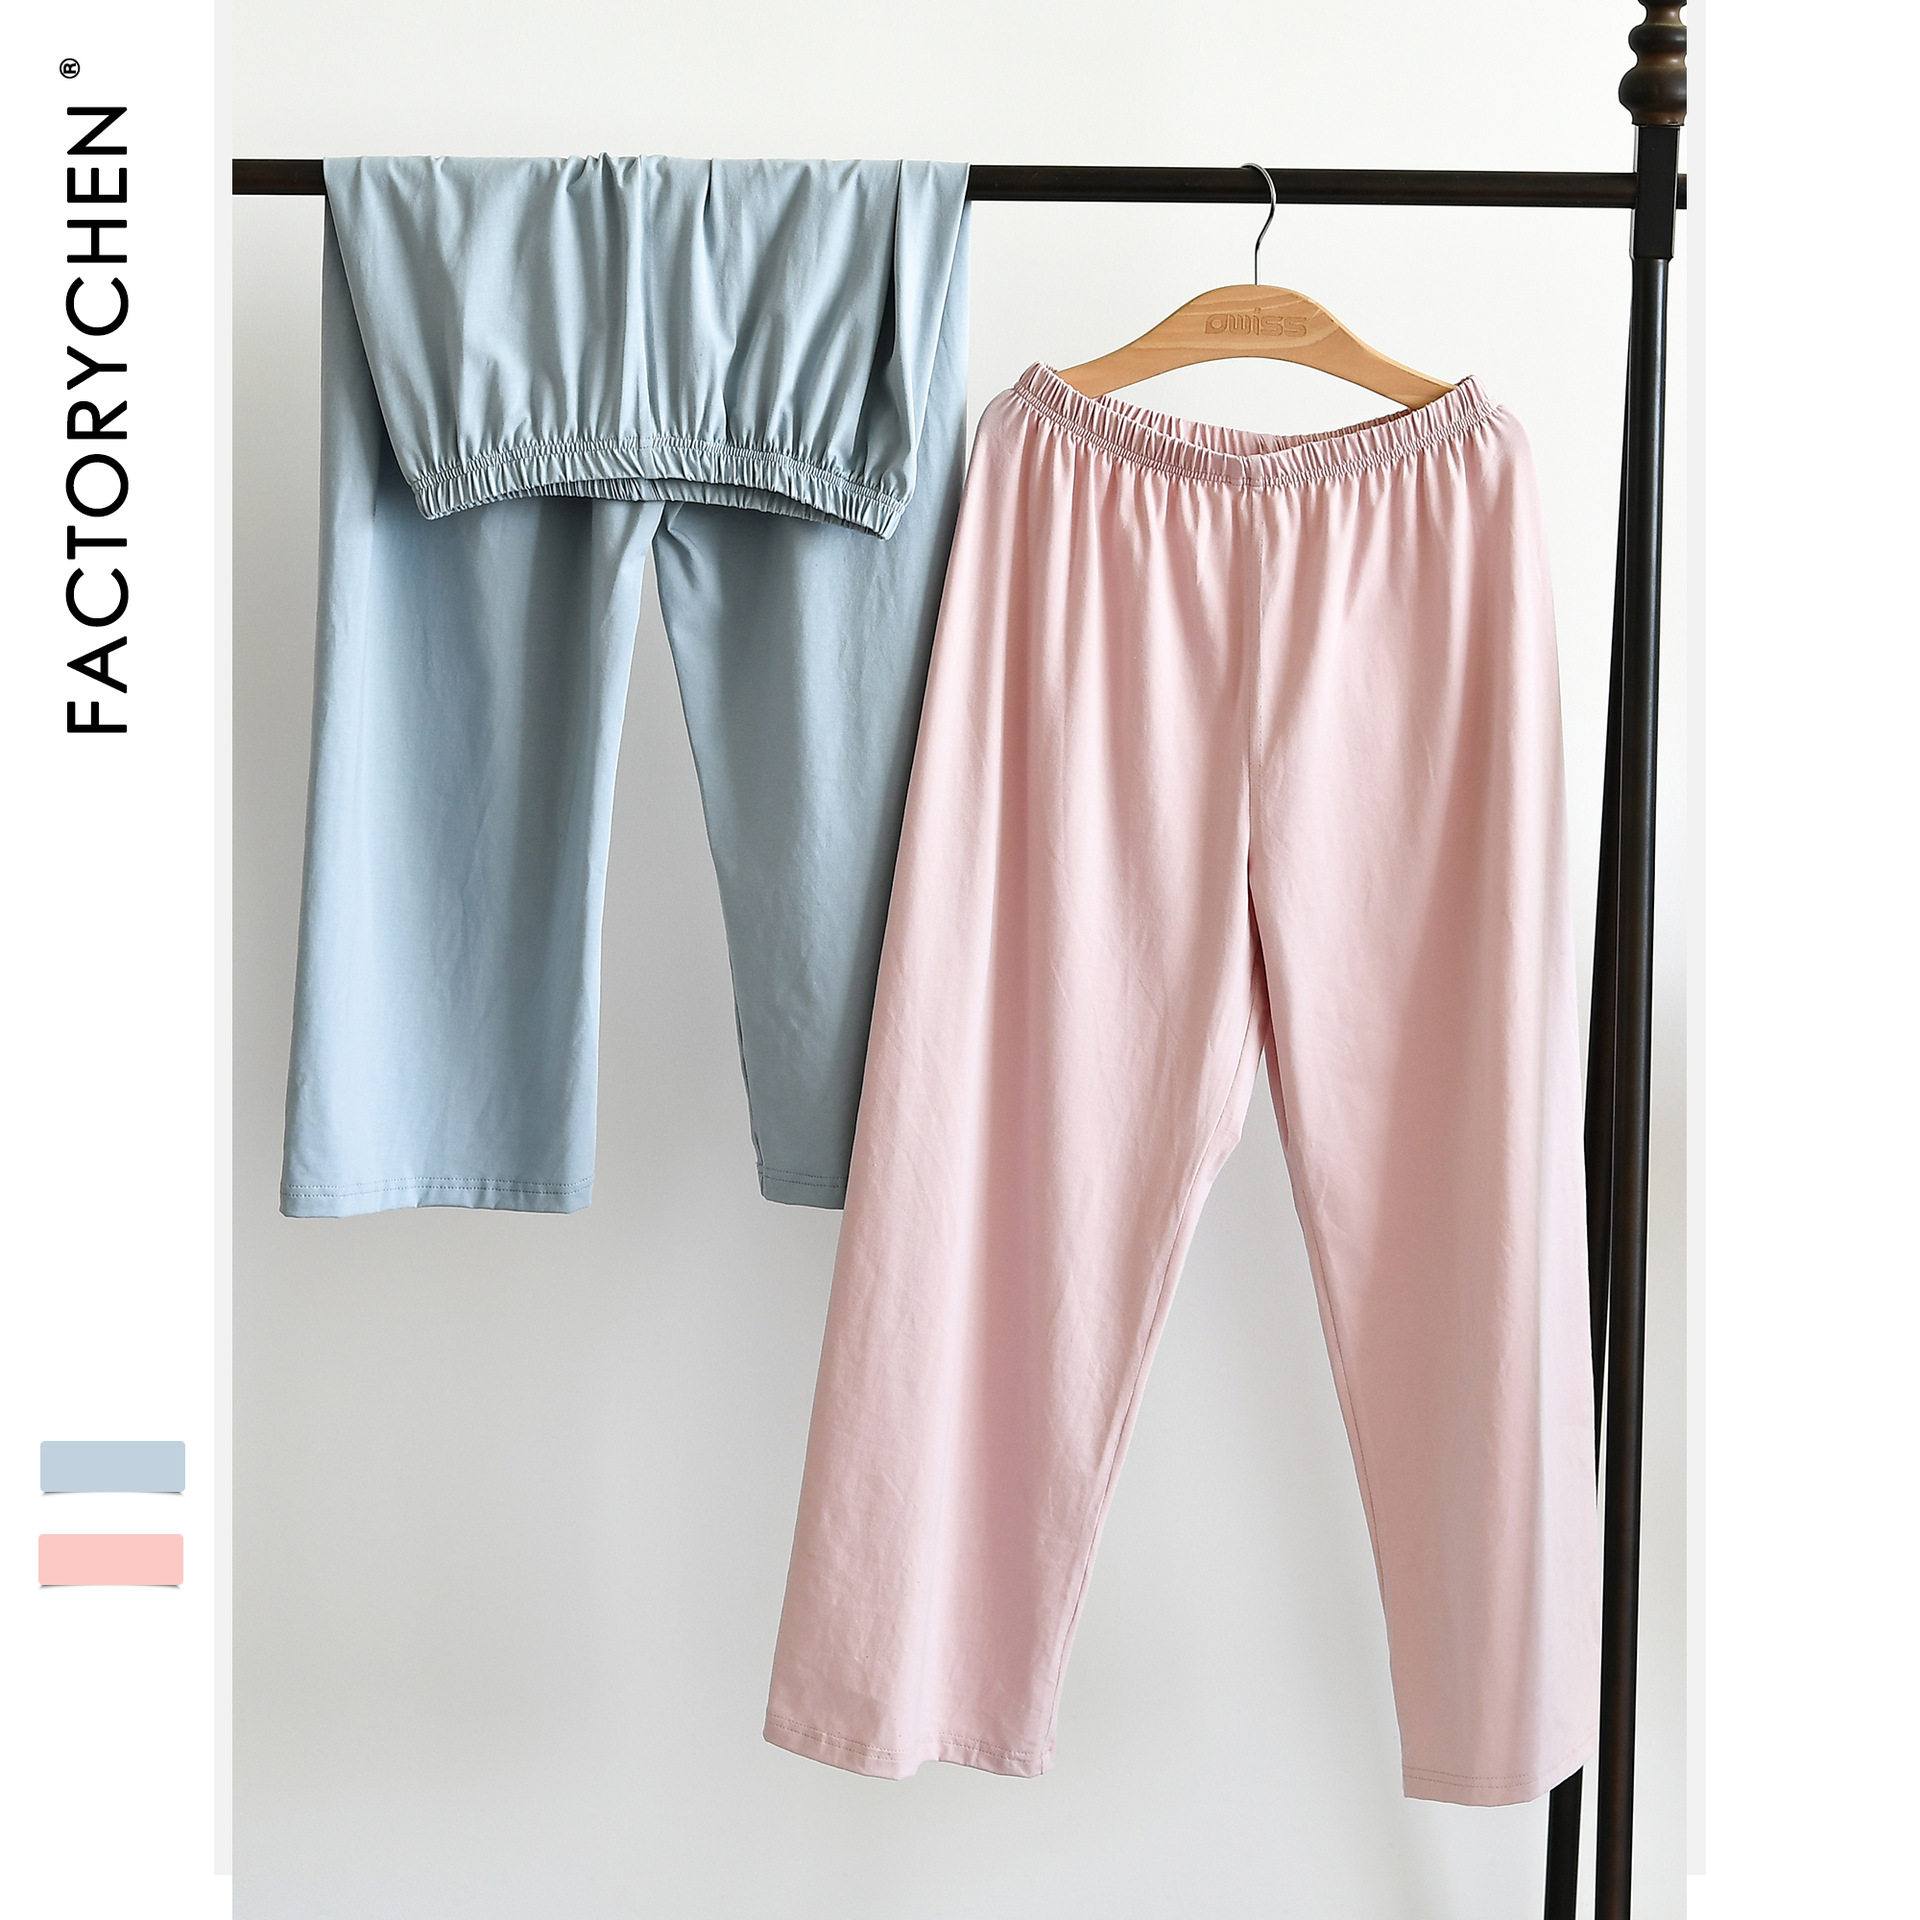 Summer Female Loose Plus Size Sleep Bottoms Comfortable Good Material Elastic Ammonia + Cotton Thin Household Sleepwear Pants